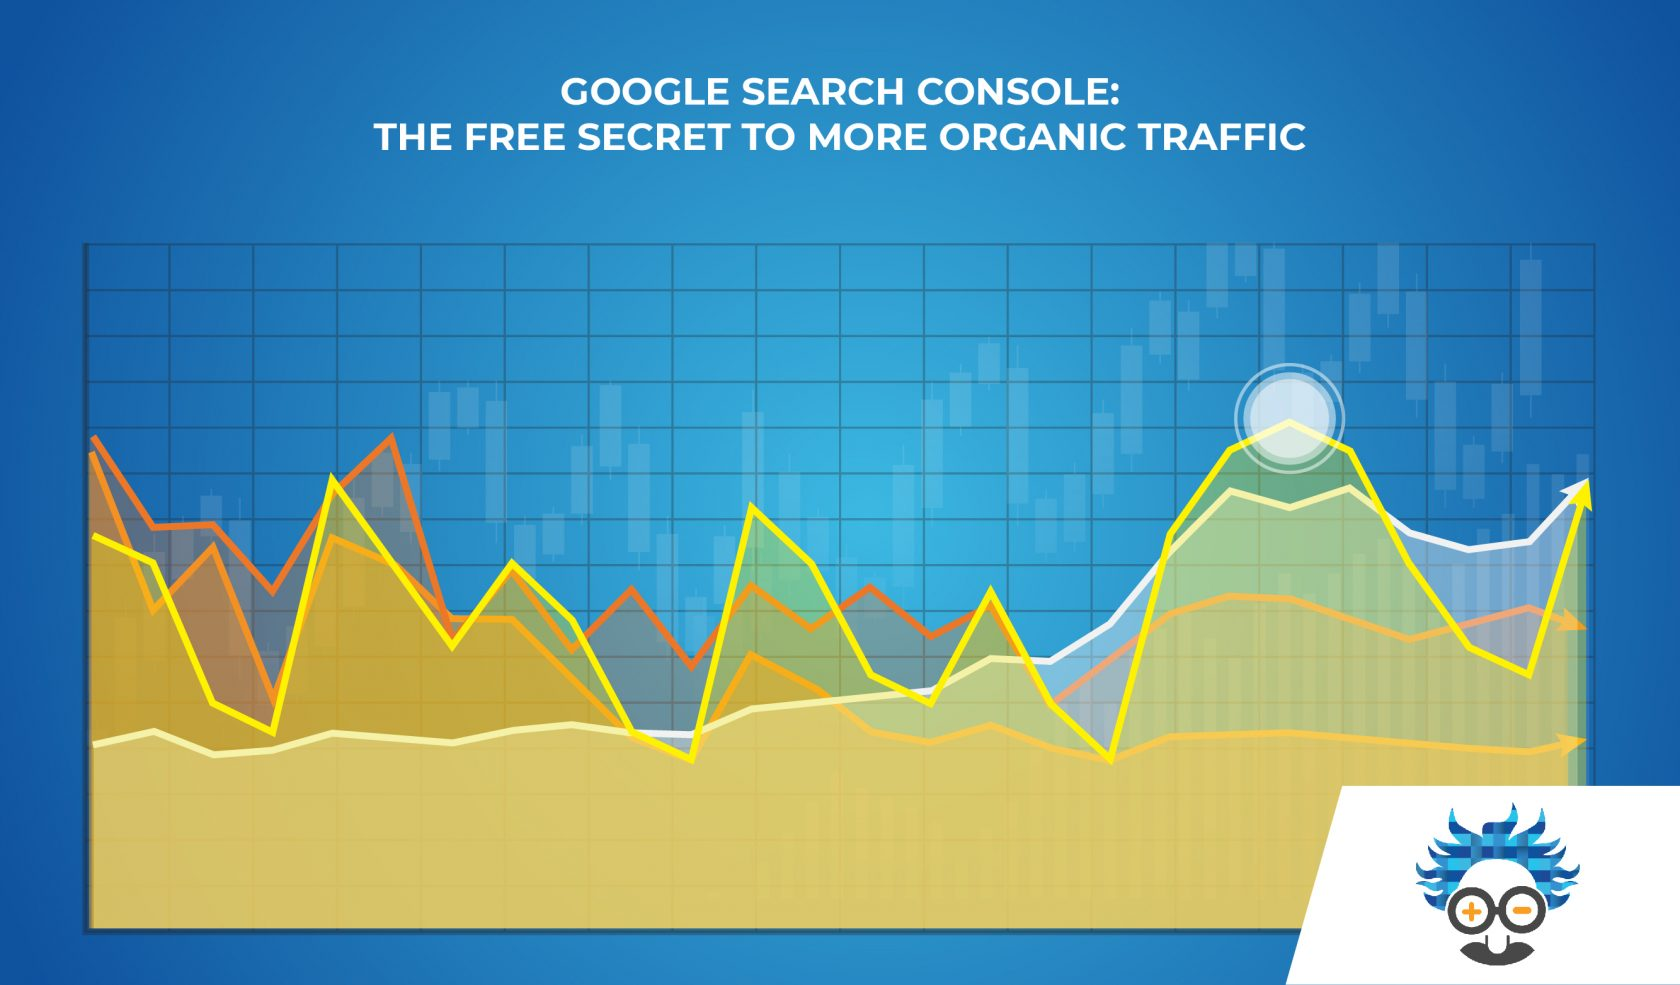 google search console strategy